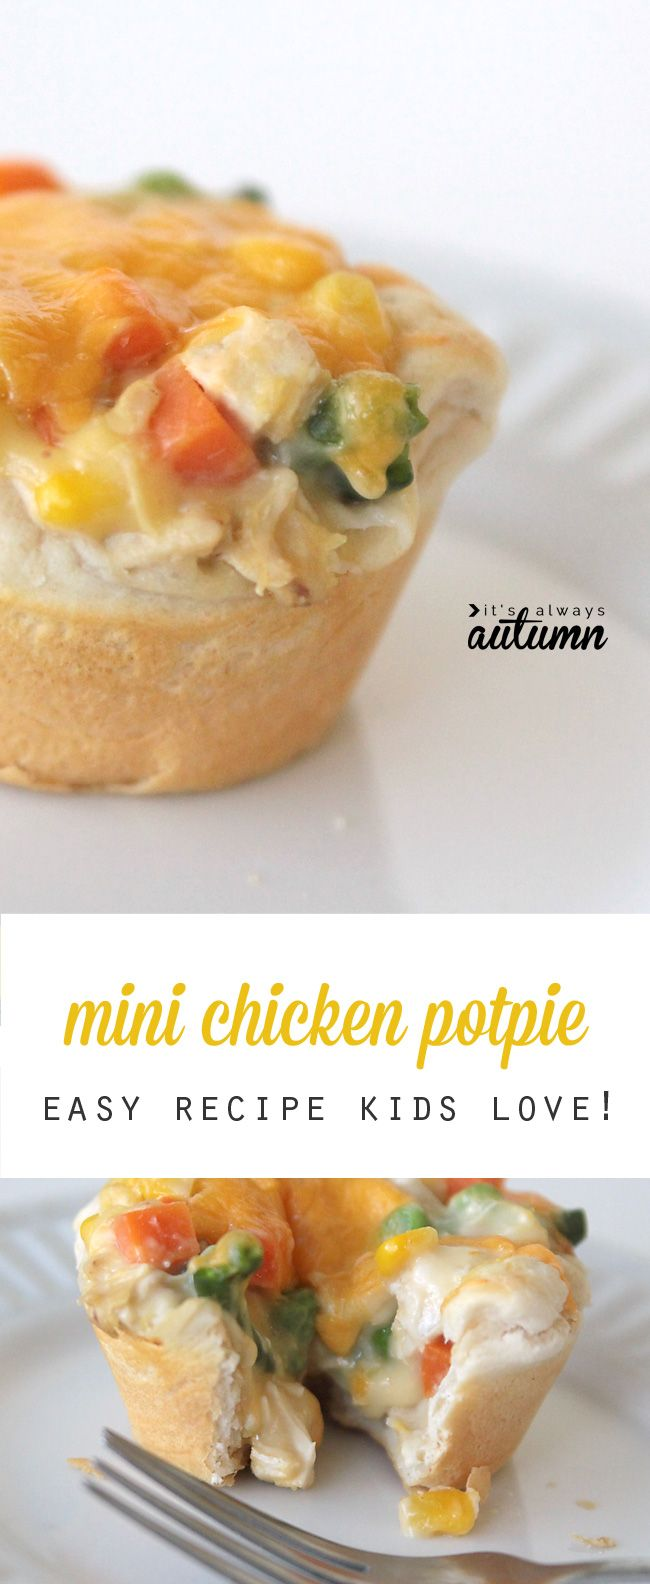 Kids will love these cute mini chicken potpies - even adults like them! Easy dinner recipe. #sp